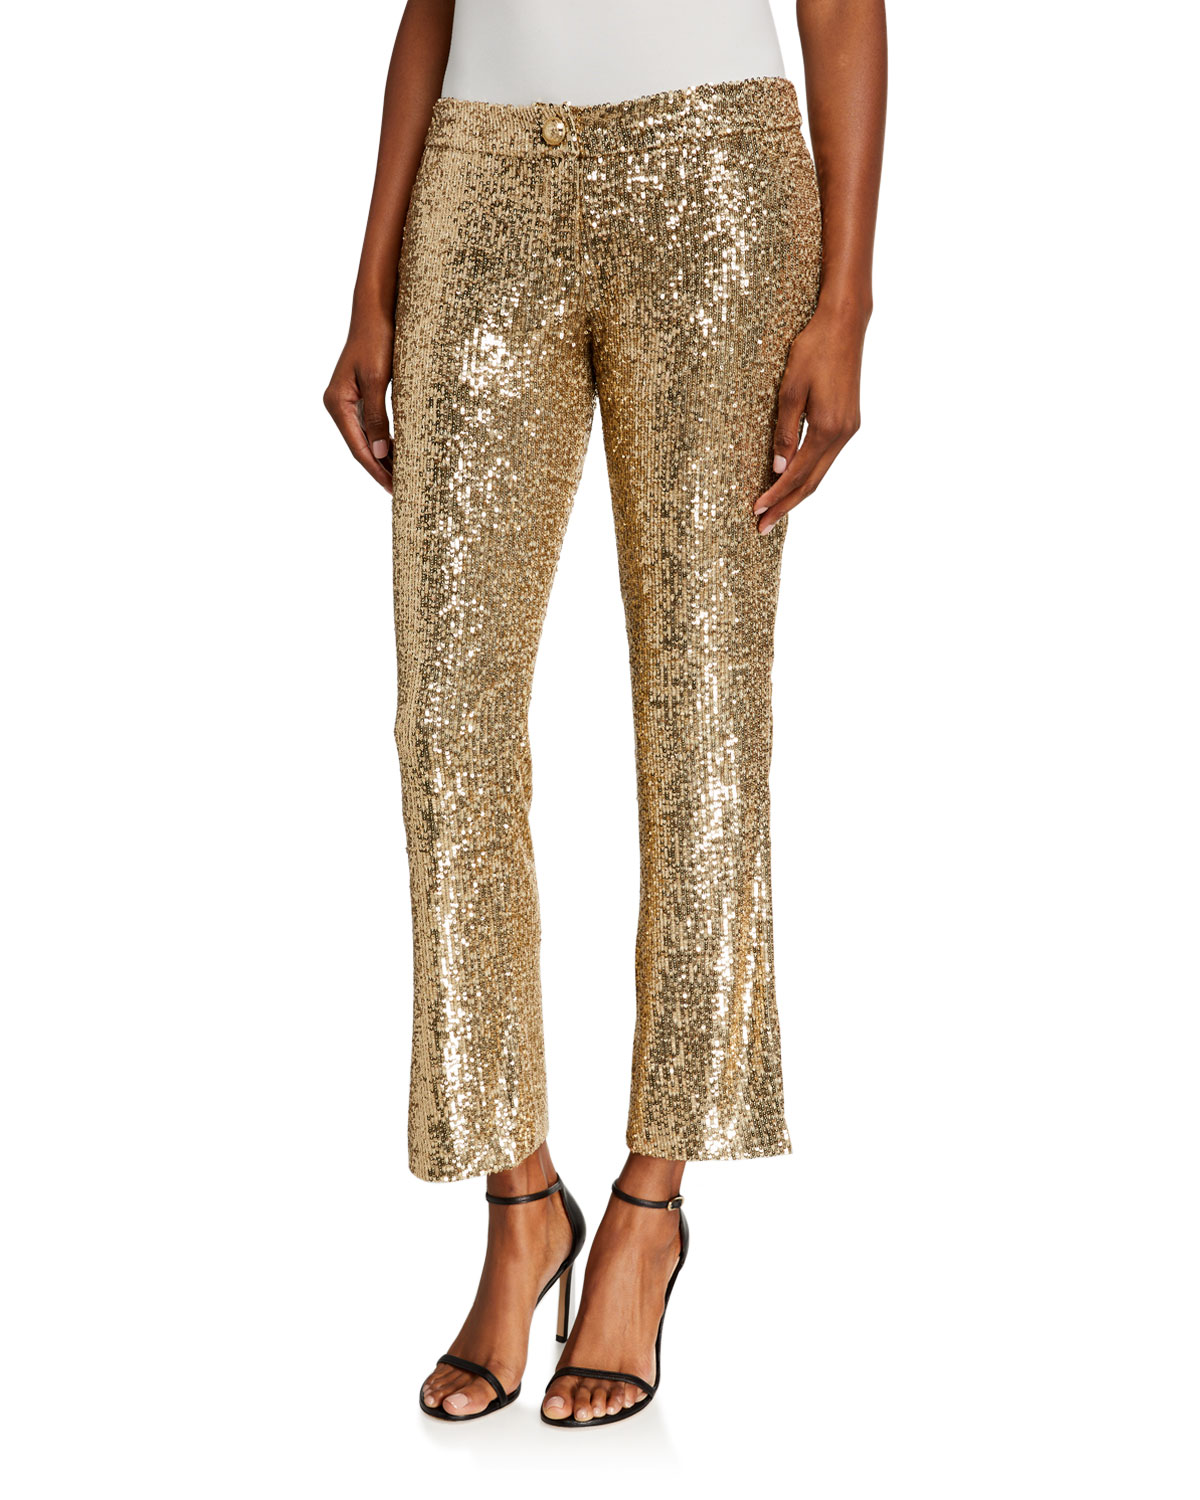 Balmain Low-Rise Sequined Flare Pants